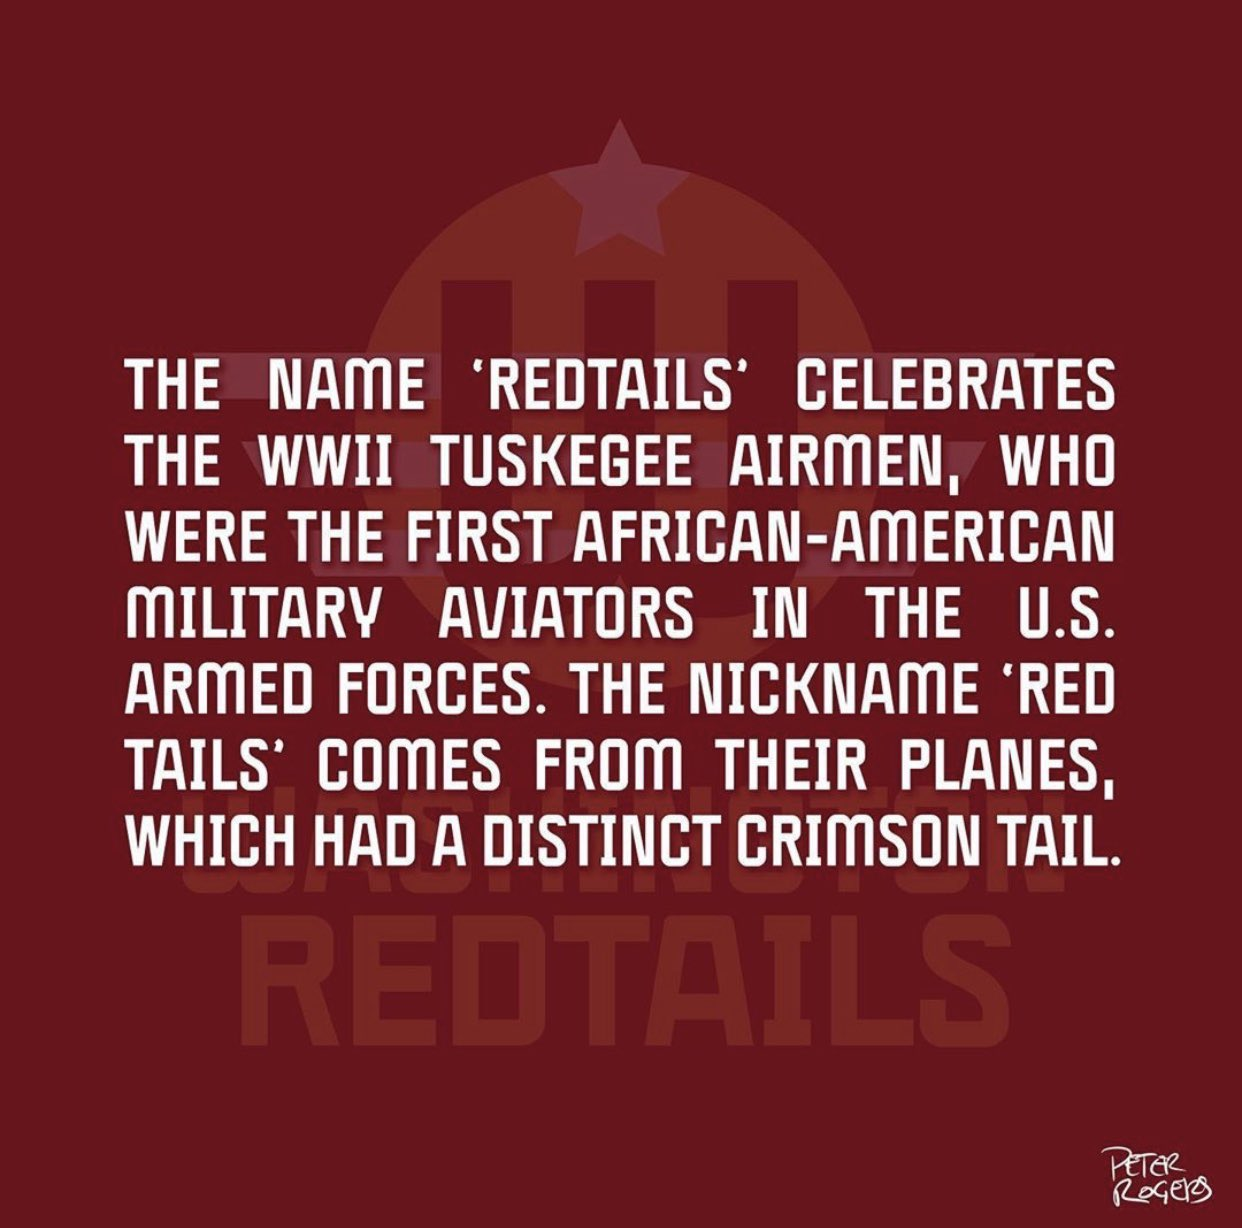 #1,759 - The Washington Redtails